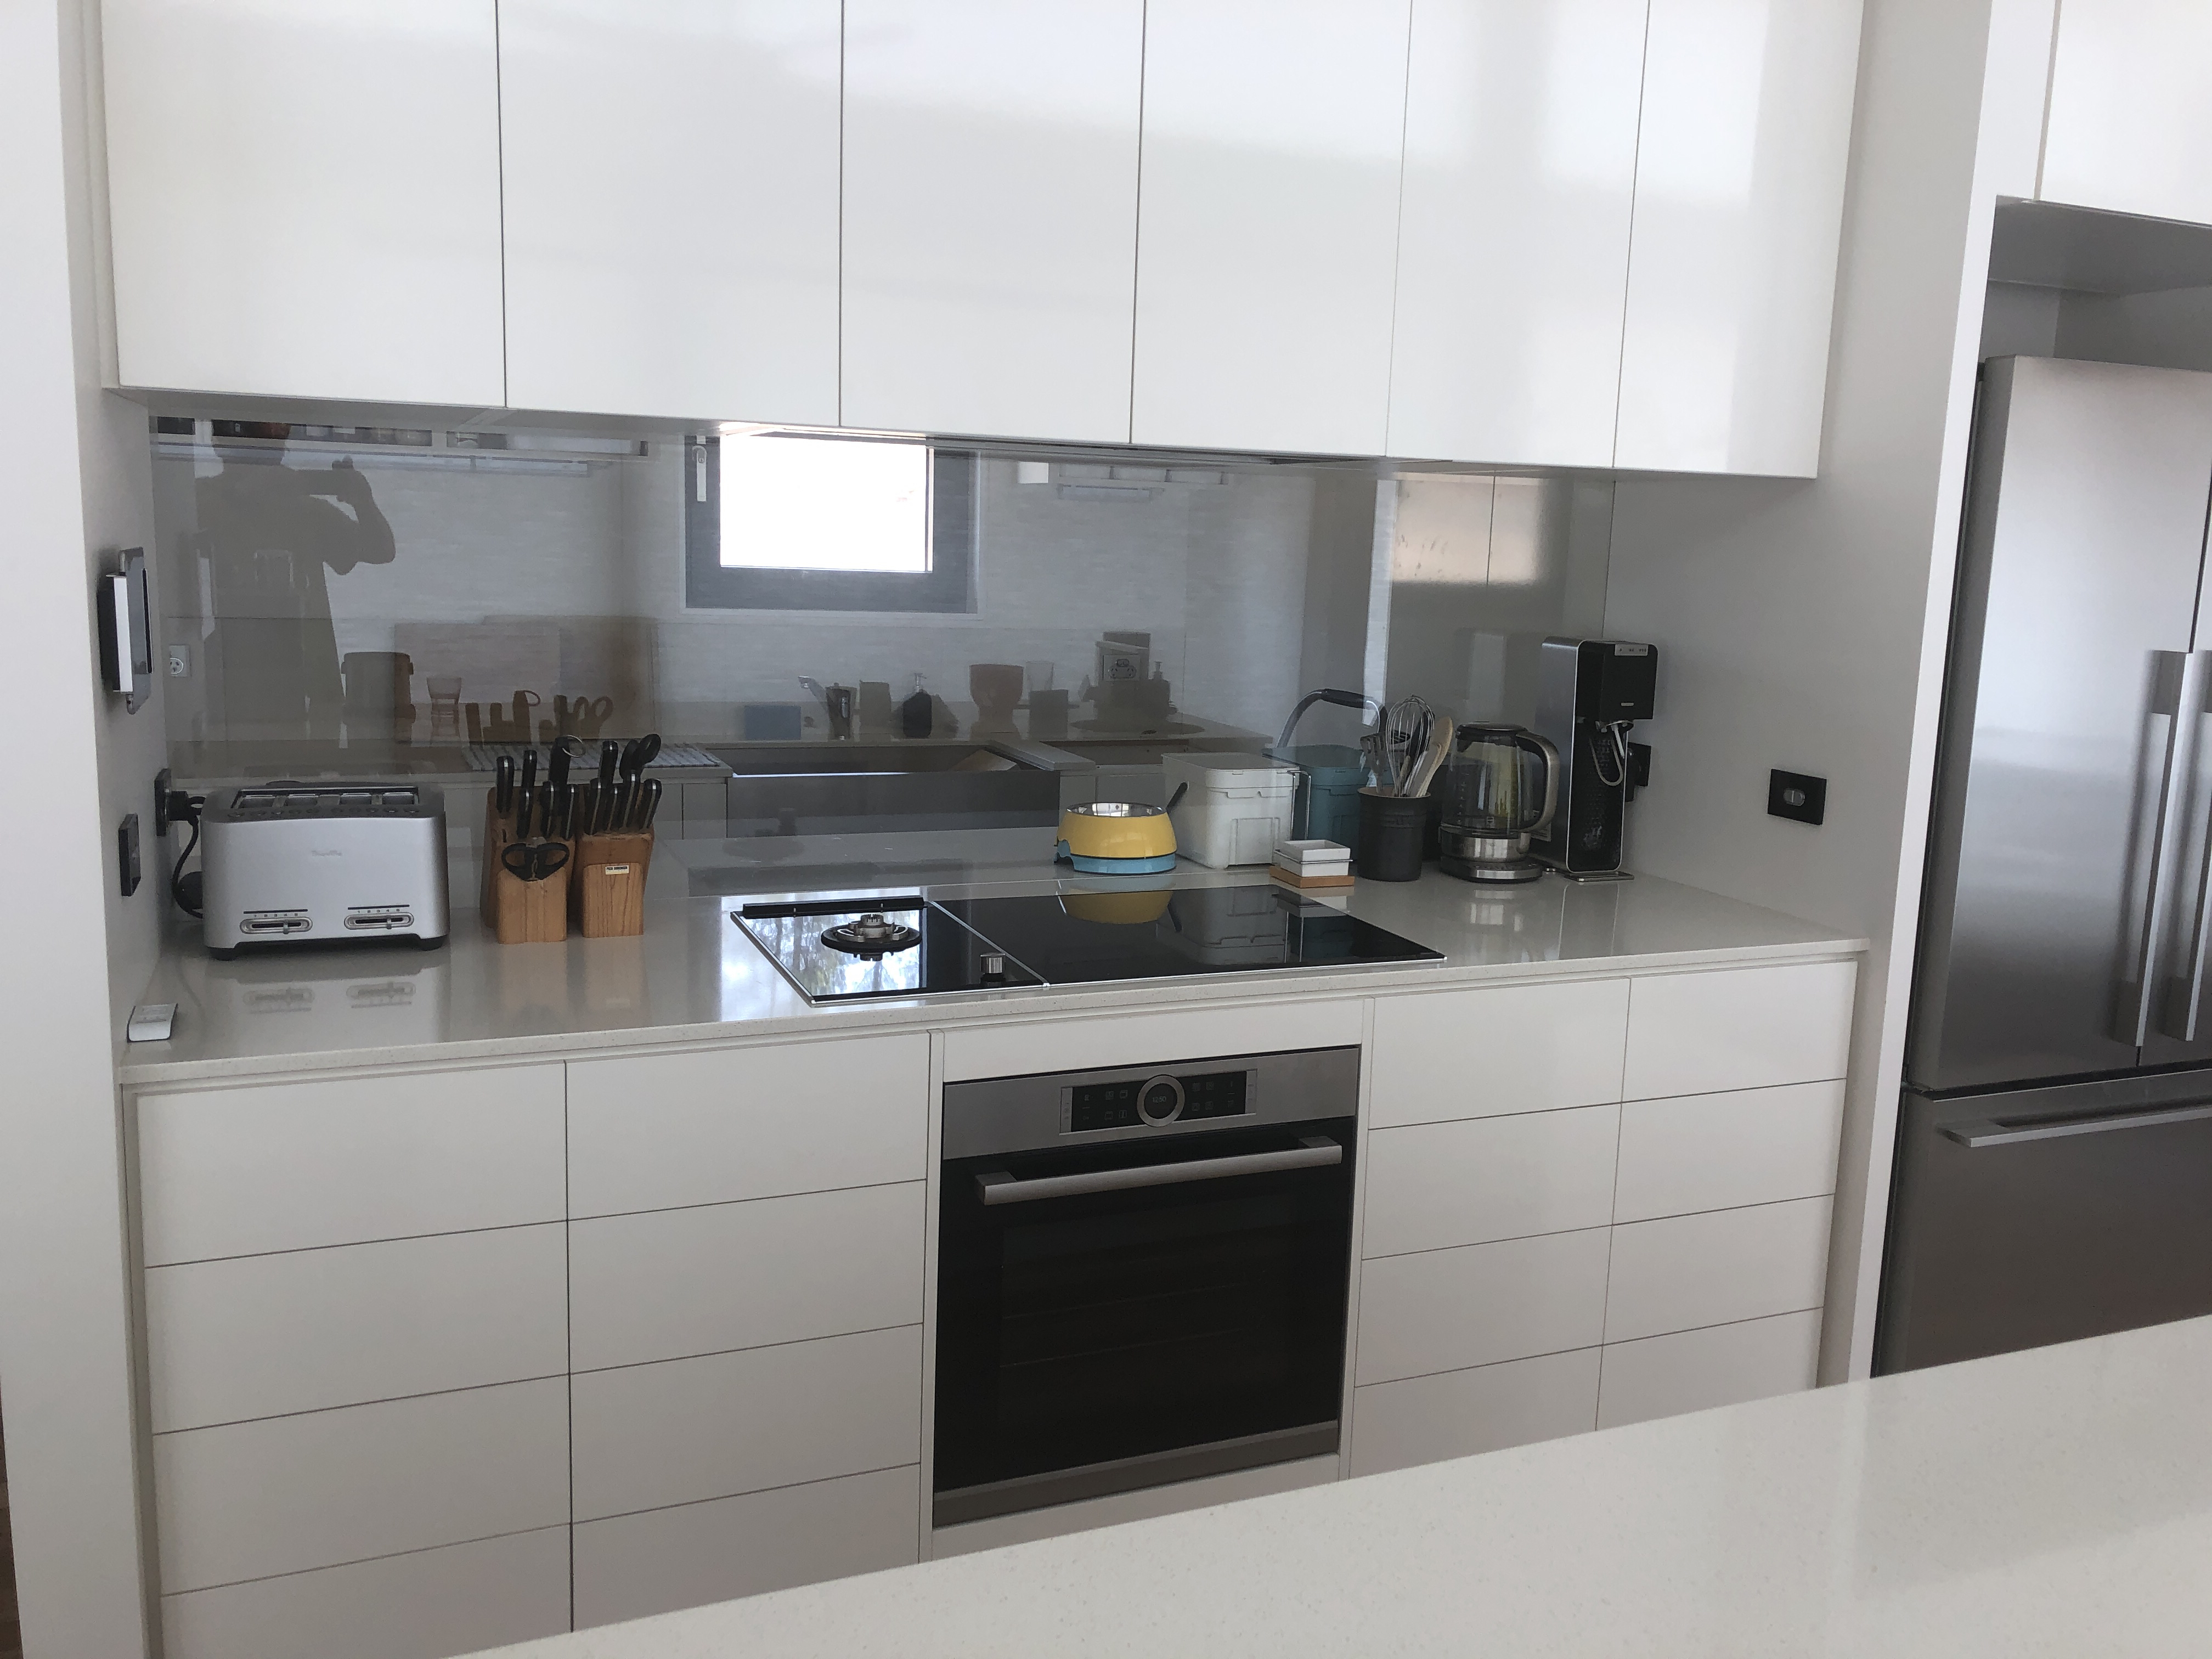 Is 700mm too tall for a splashback window?